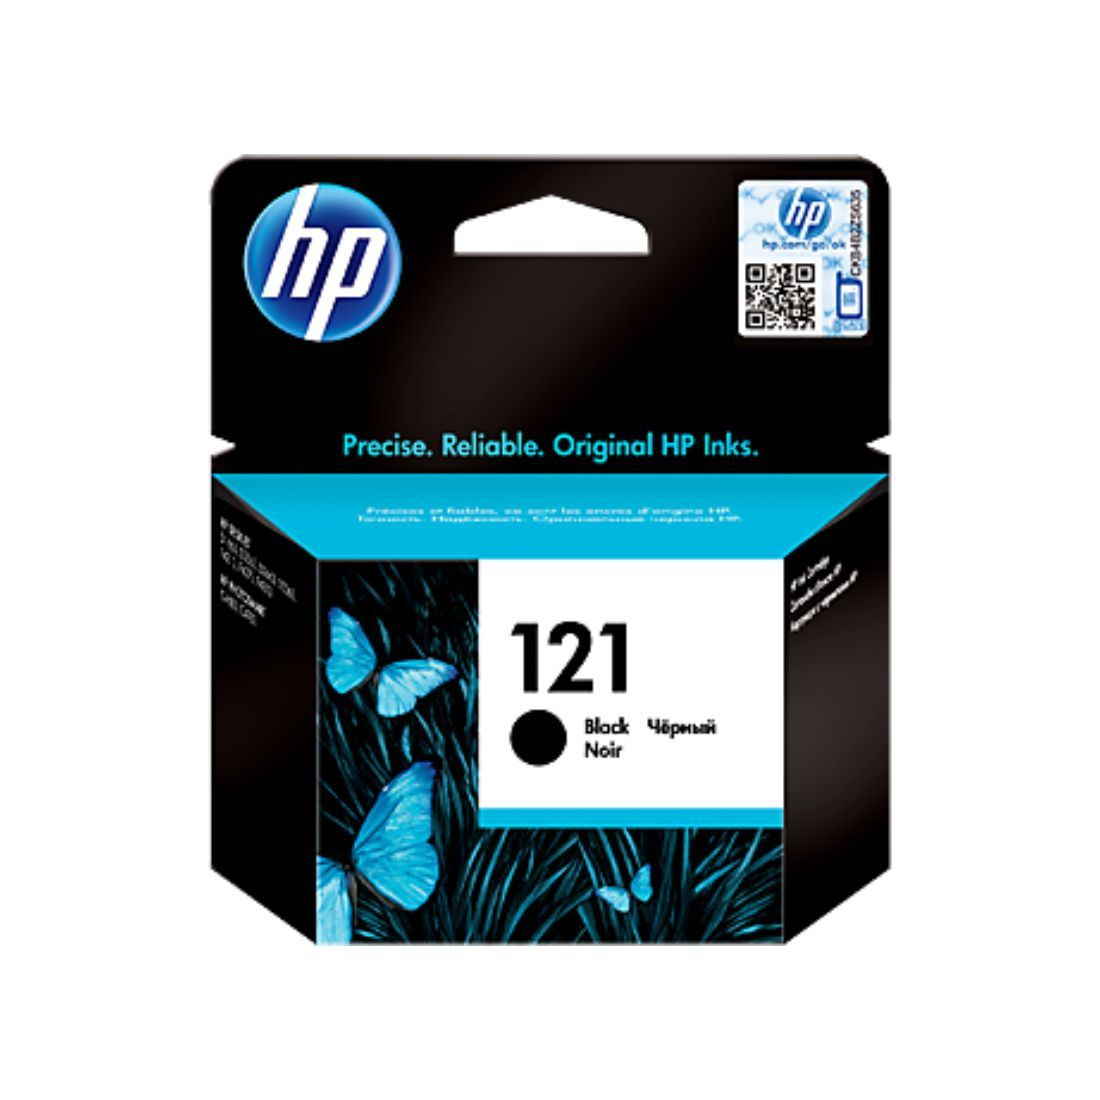 HP 121 Black Original Ink Cartridge - Innovative Computers Limited